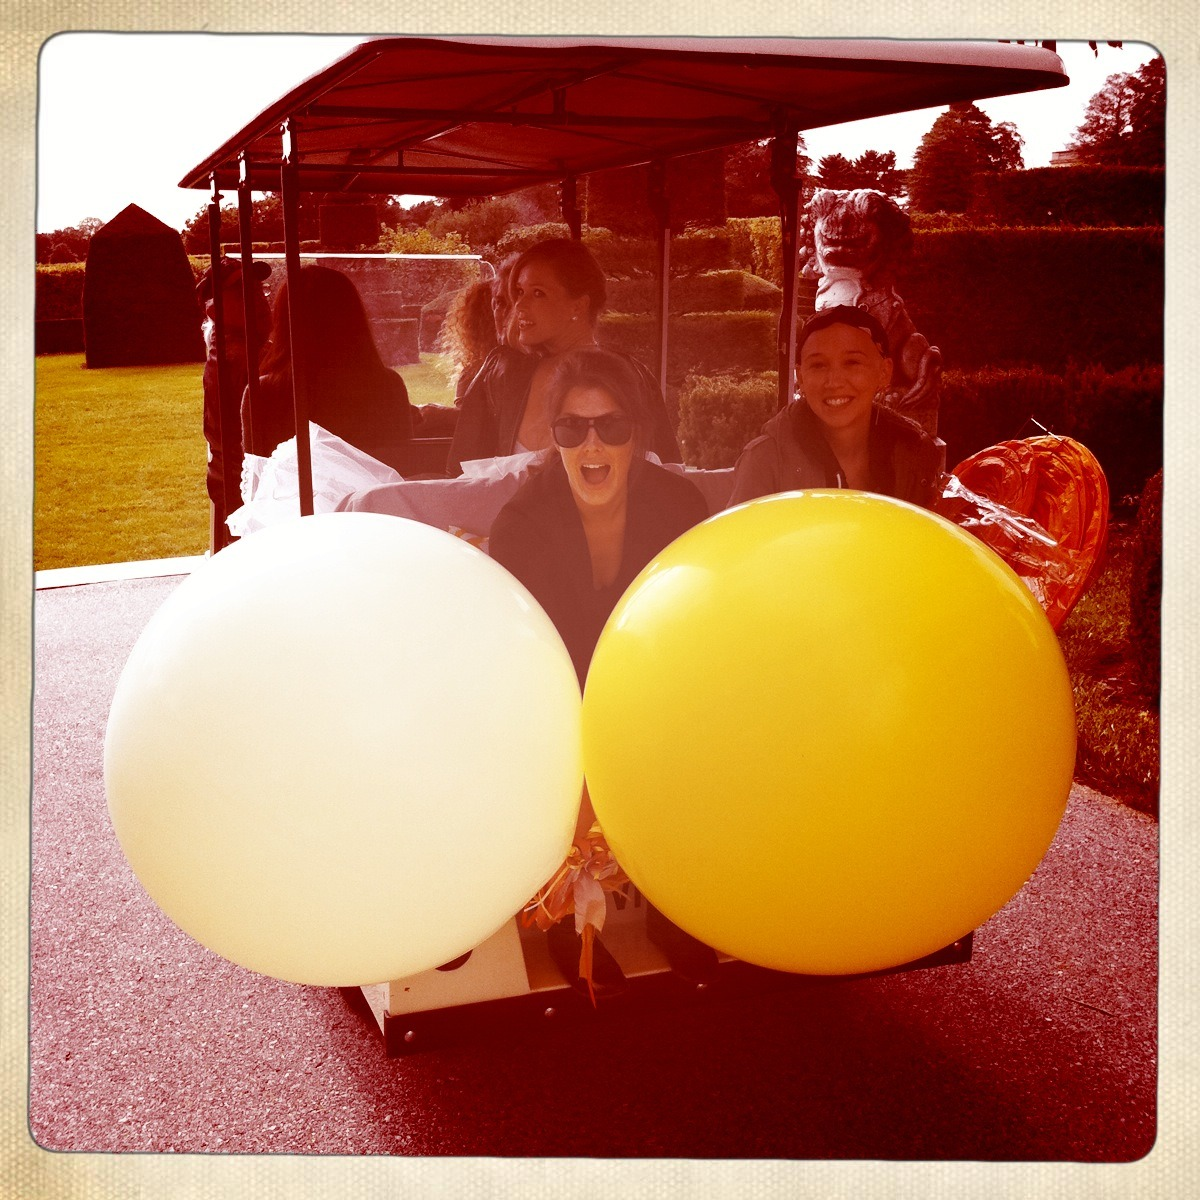 gotta love balloons and golf carts